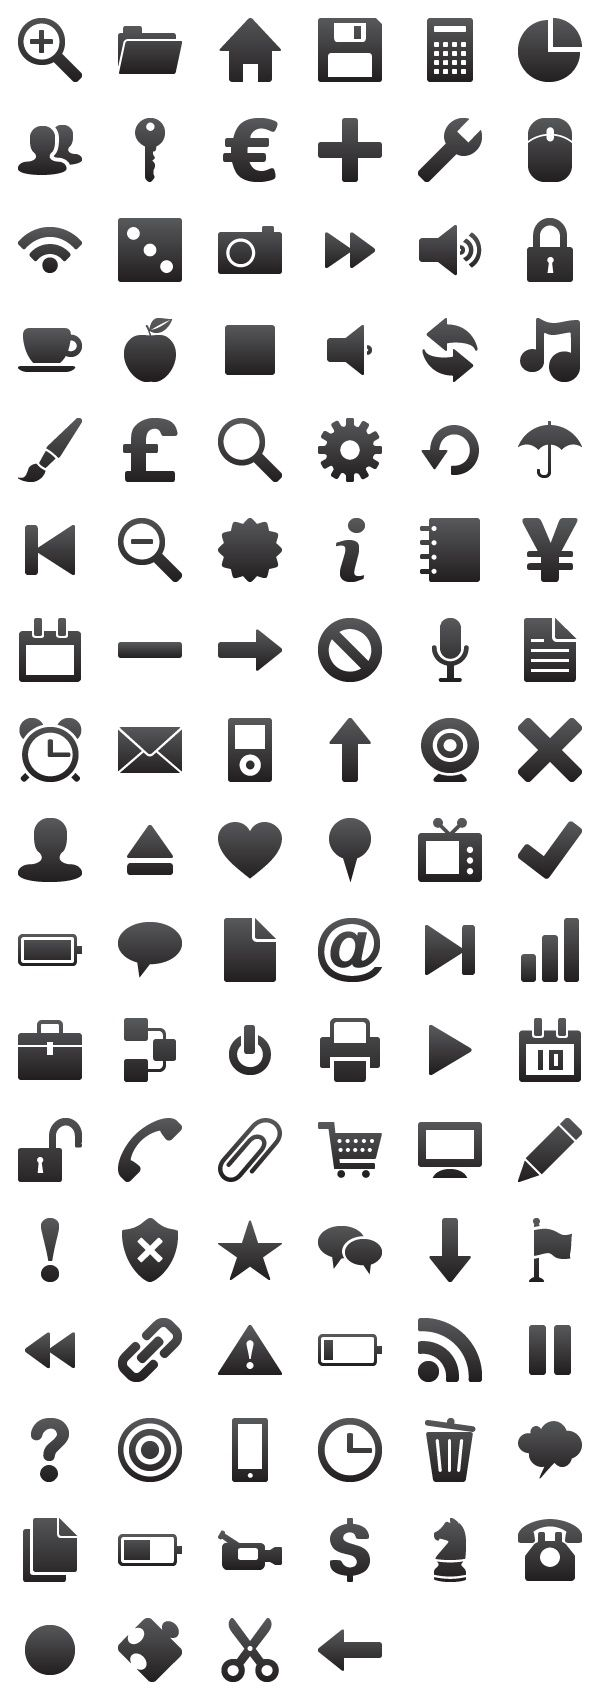 """#Symbolize"" #icon #set, contains 100 #icons. Comes with a Free, Commercial and Extended License."